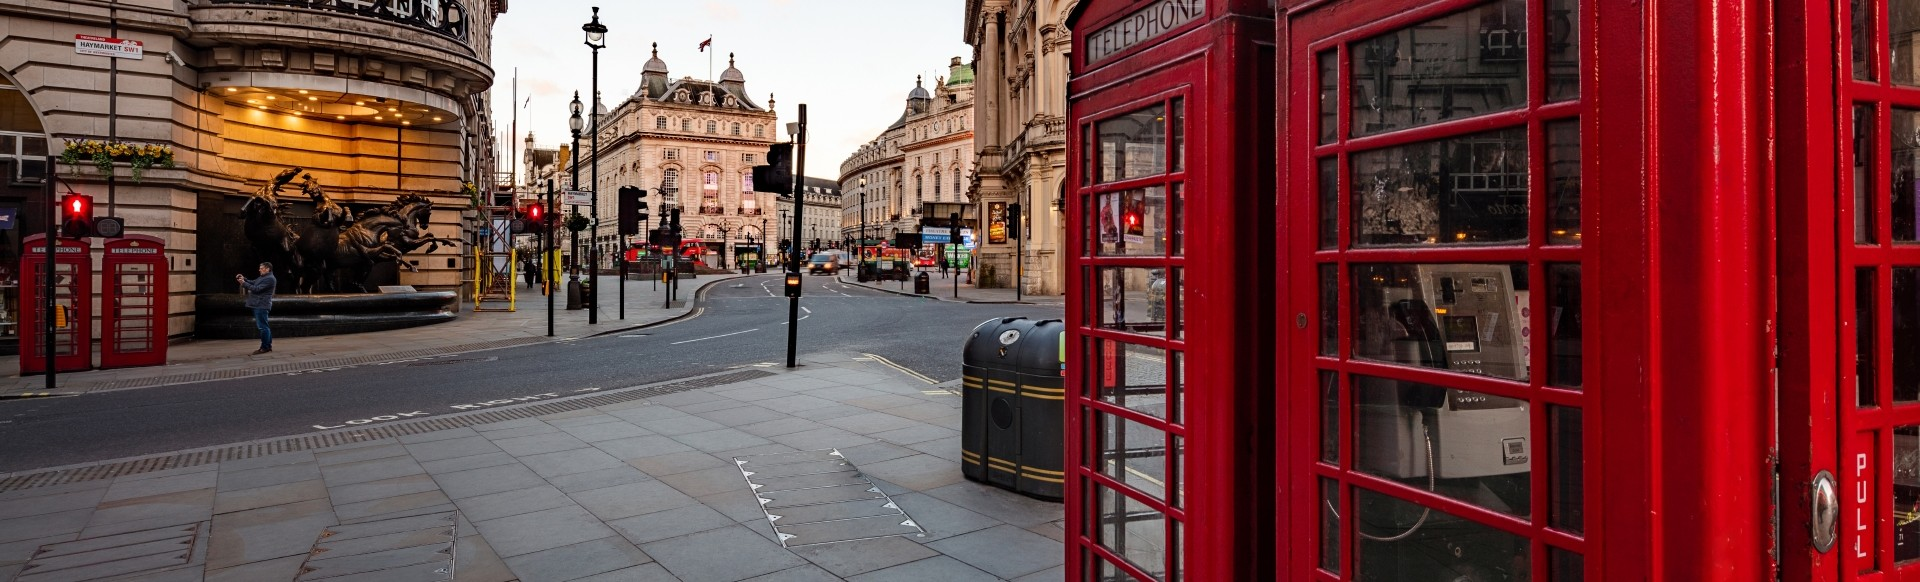 Two red London telephone booths by an empty Piccadilly Circus at sunrise.